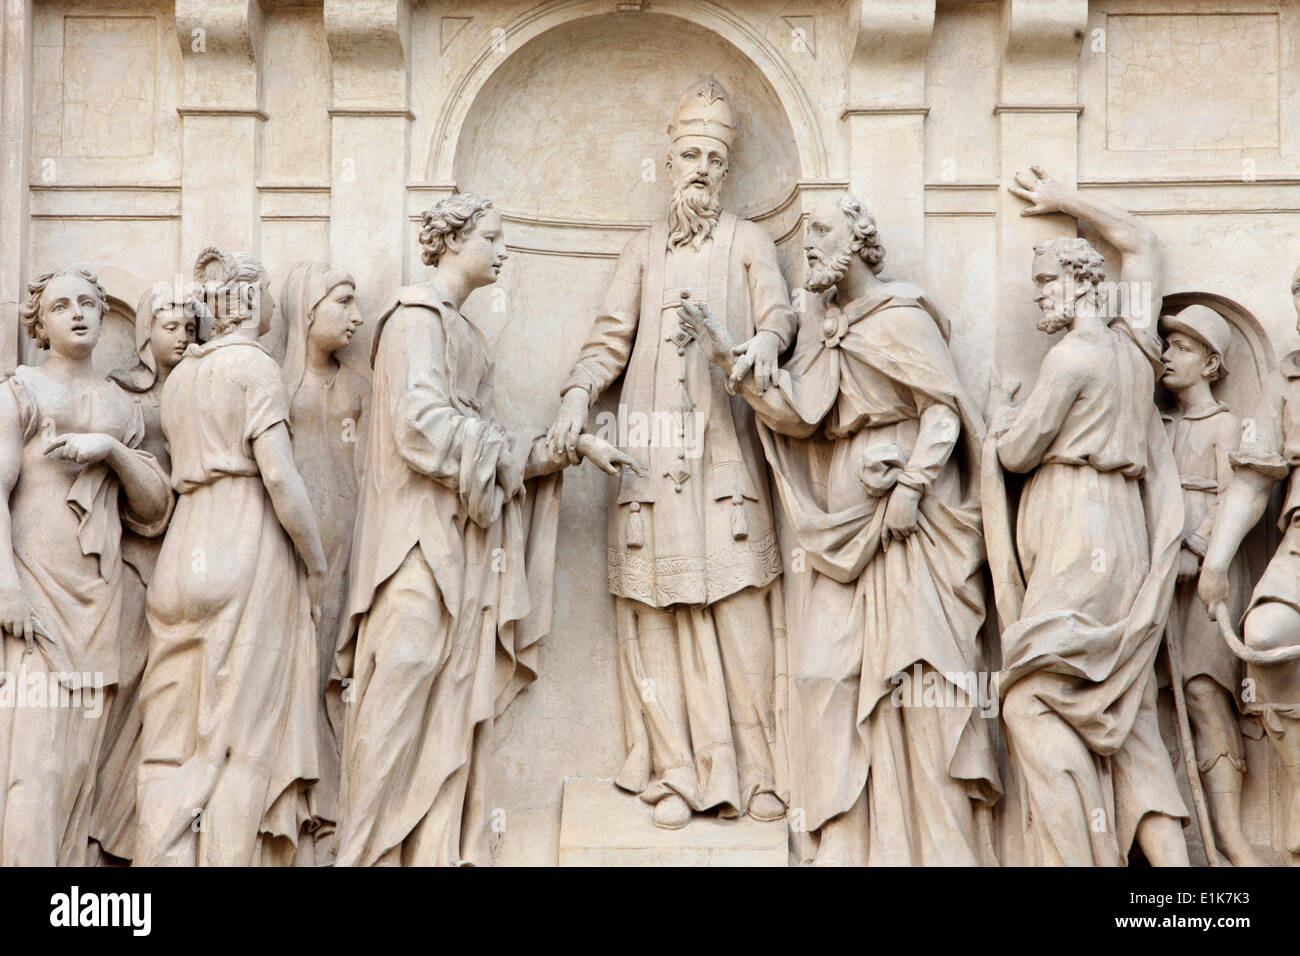 Loreto church sculpture. Mariage of Joseph and Mary - Stock Image